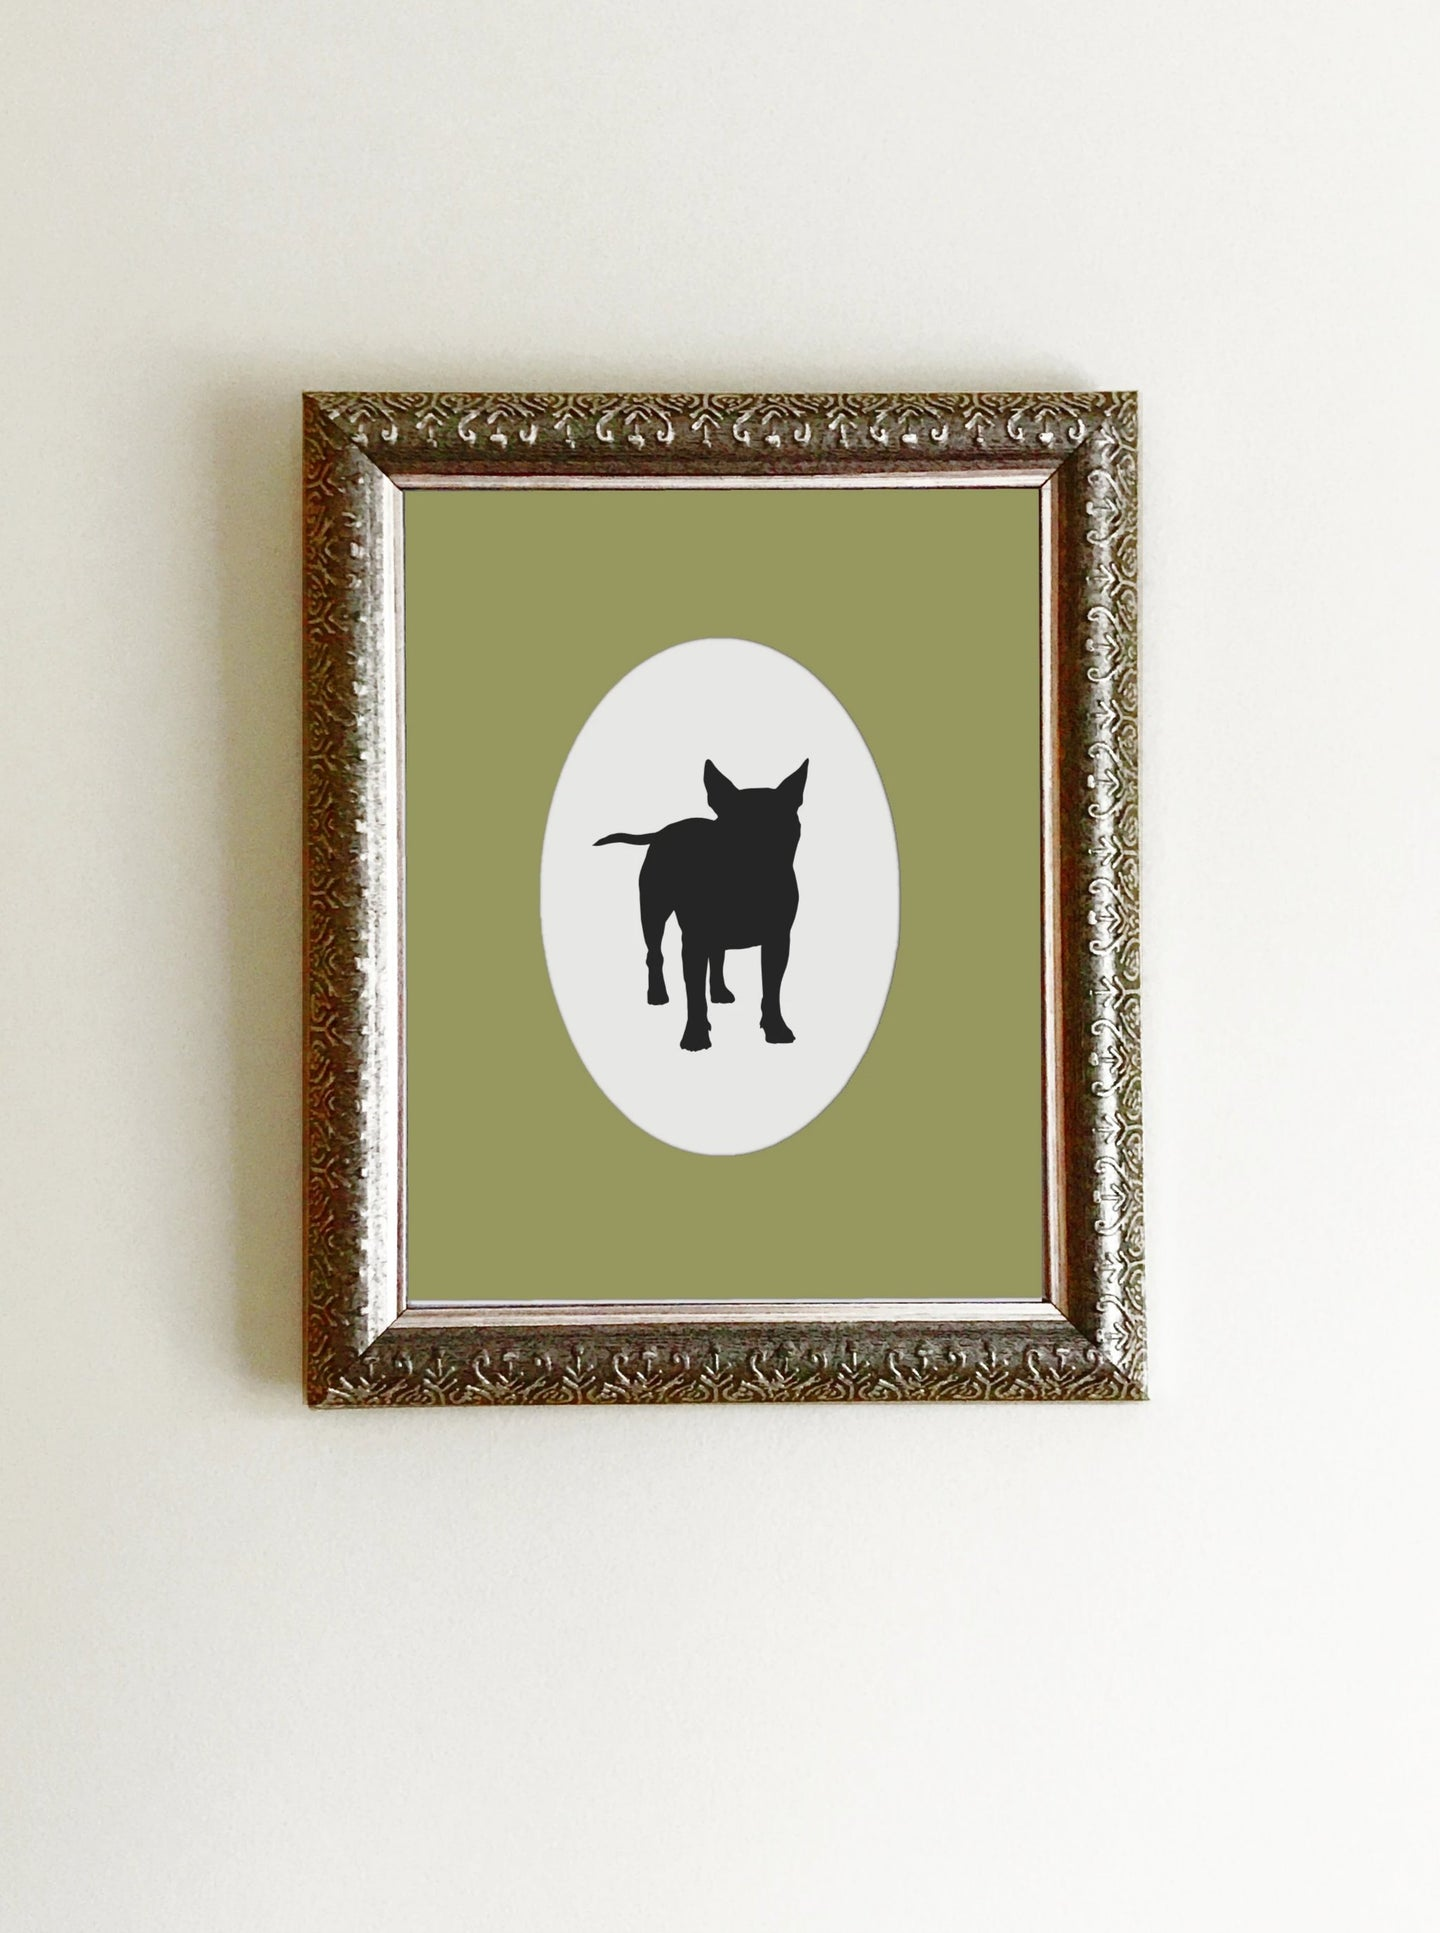 boston terrier silhouette in black and white framed with green mat